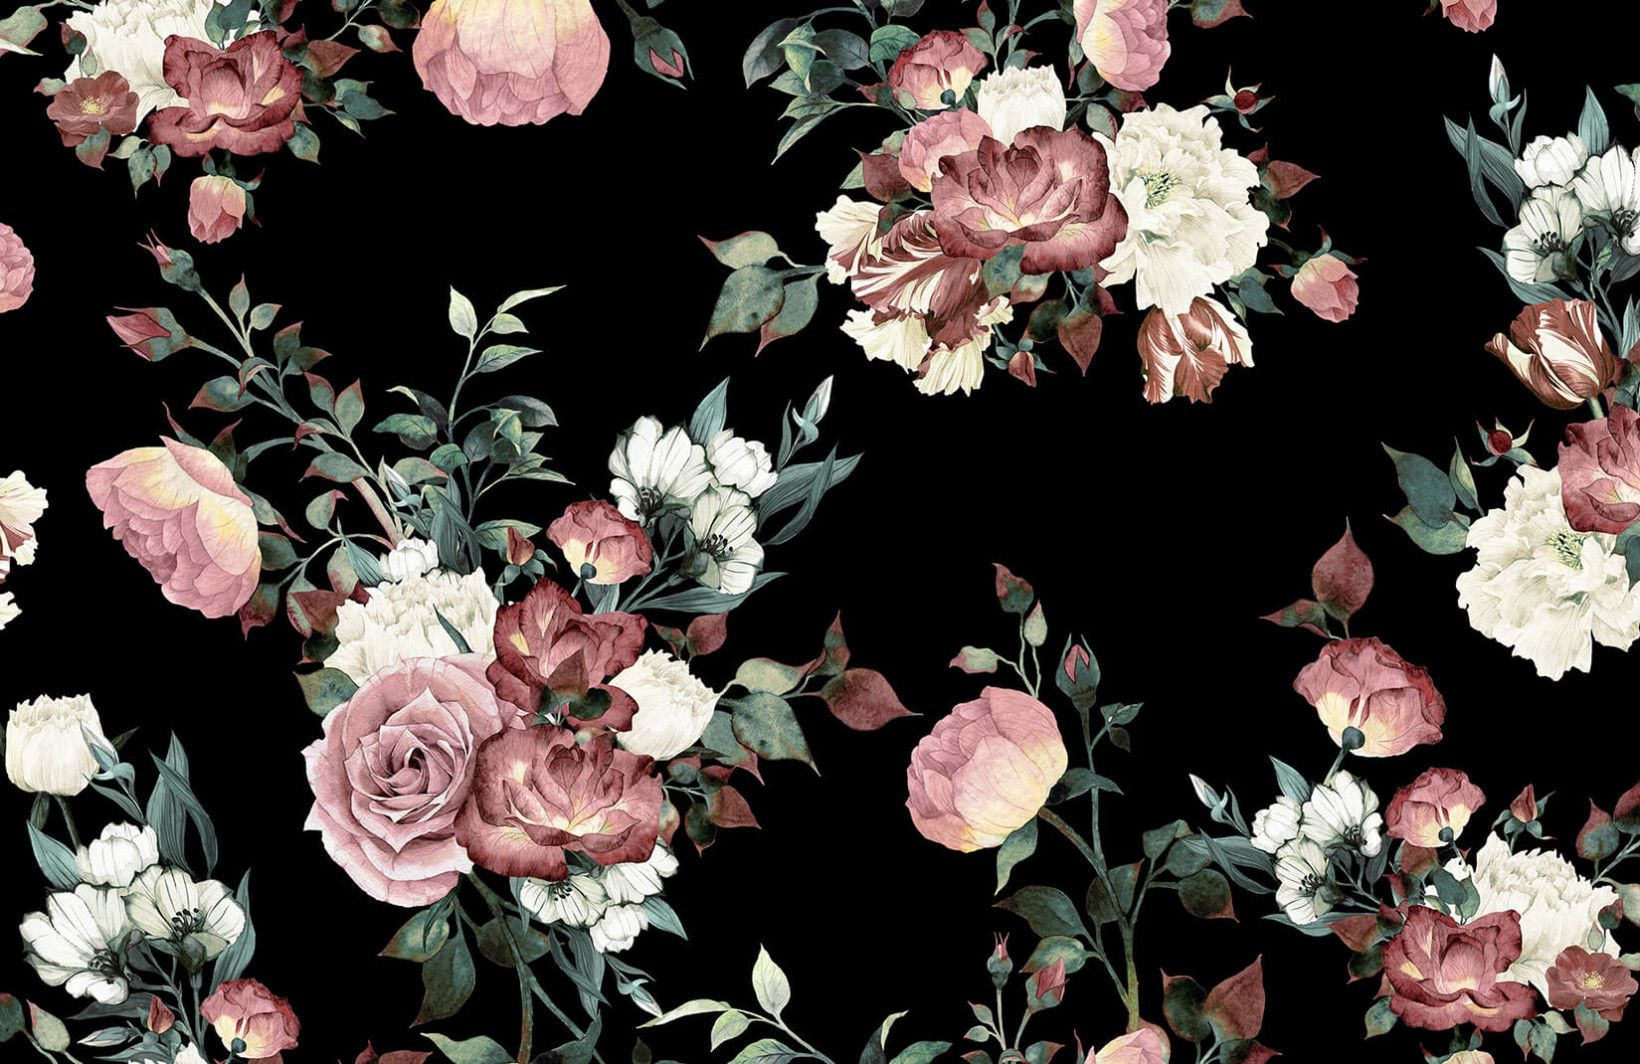 Vintage Pink and Cream Dark Floral Wall Mural Vintage